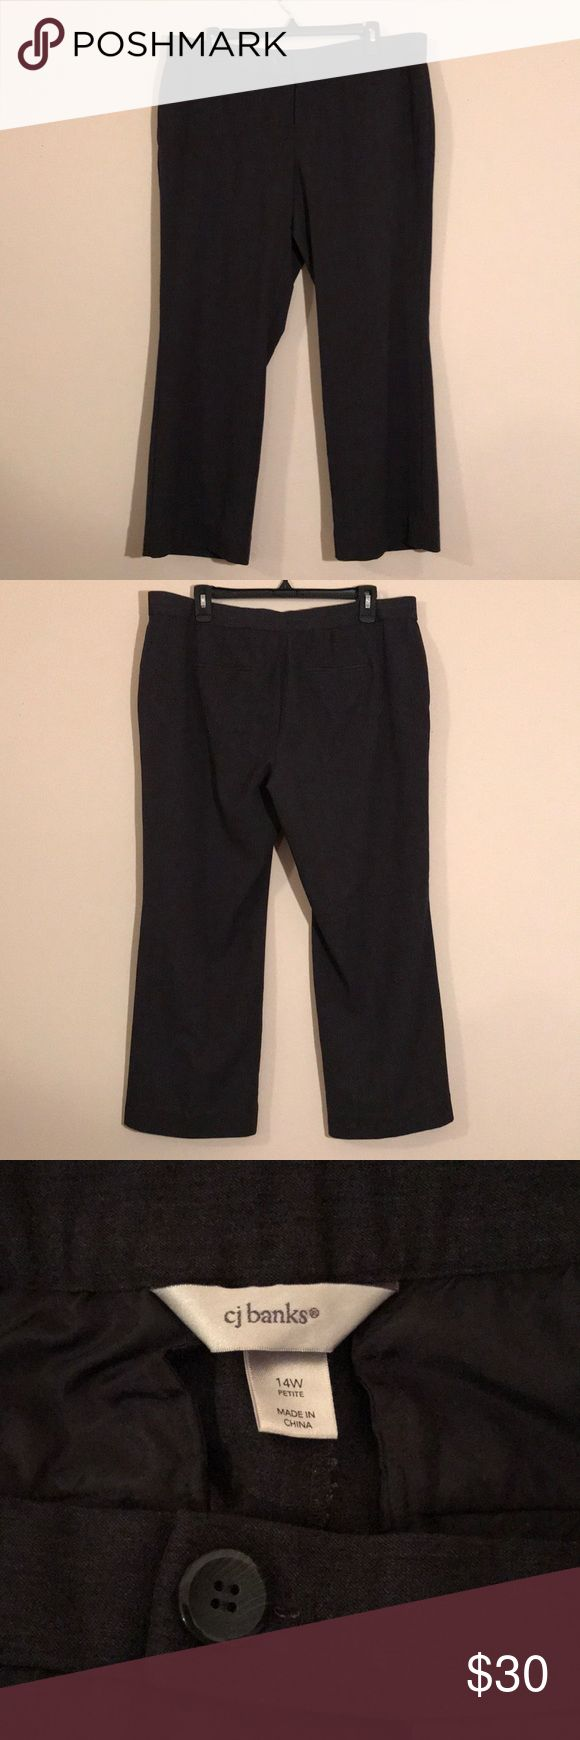 CJ Banks Dress Pants CJ Banks 14W Petite dark grey dress pants - two buttons and zipper - like new! CJ Banks Pants Trousers